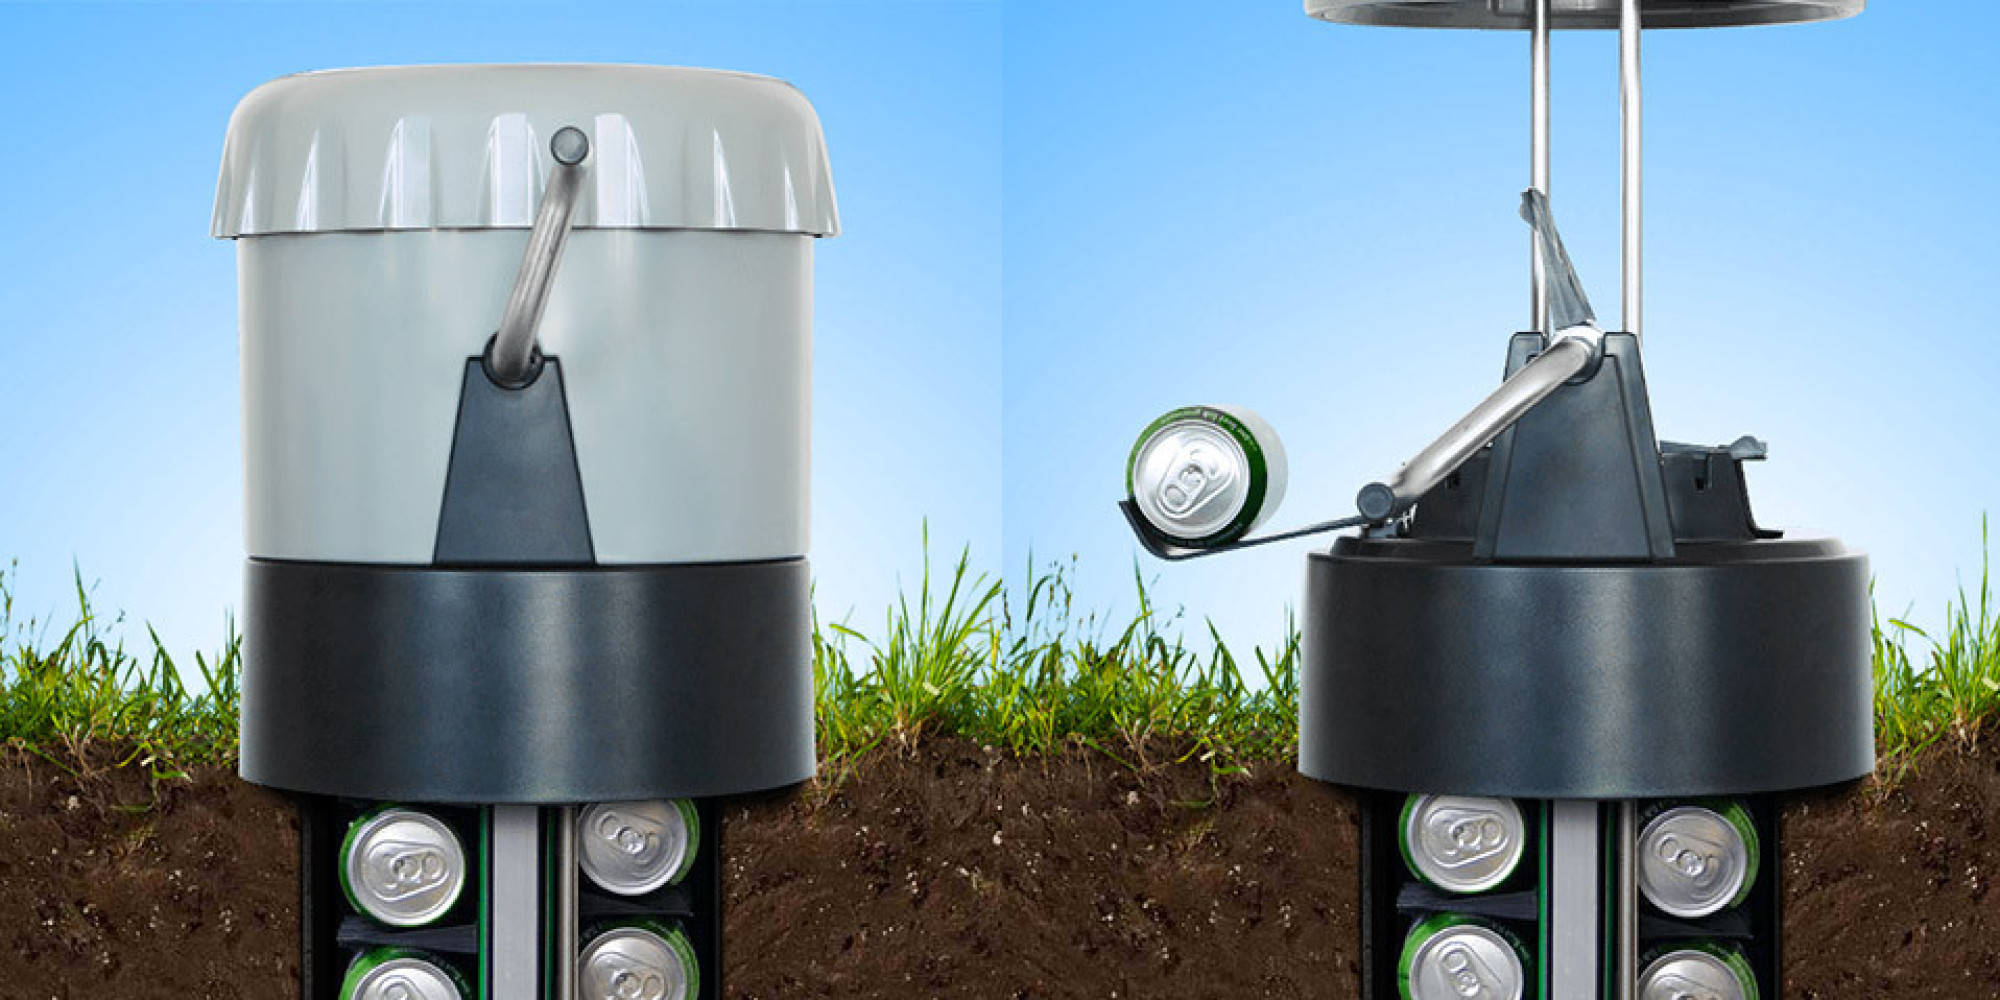 The Earth Cooler Keep Your Drinks Cold Without Using Electricity